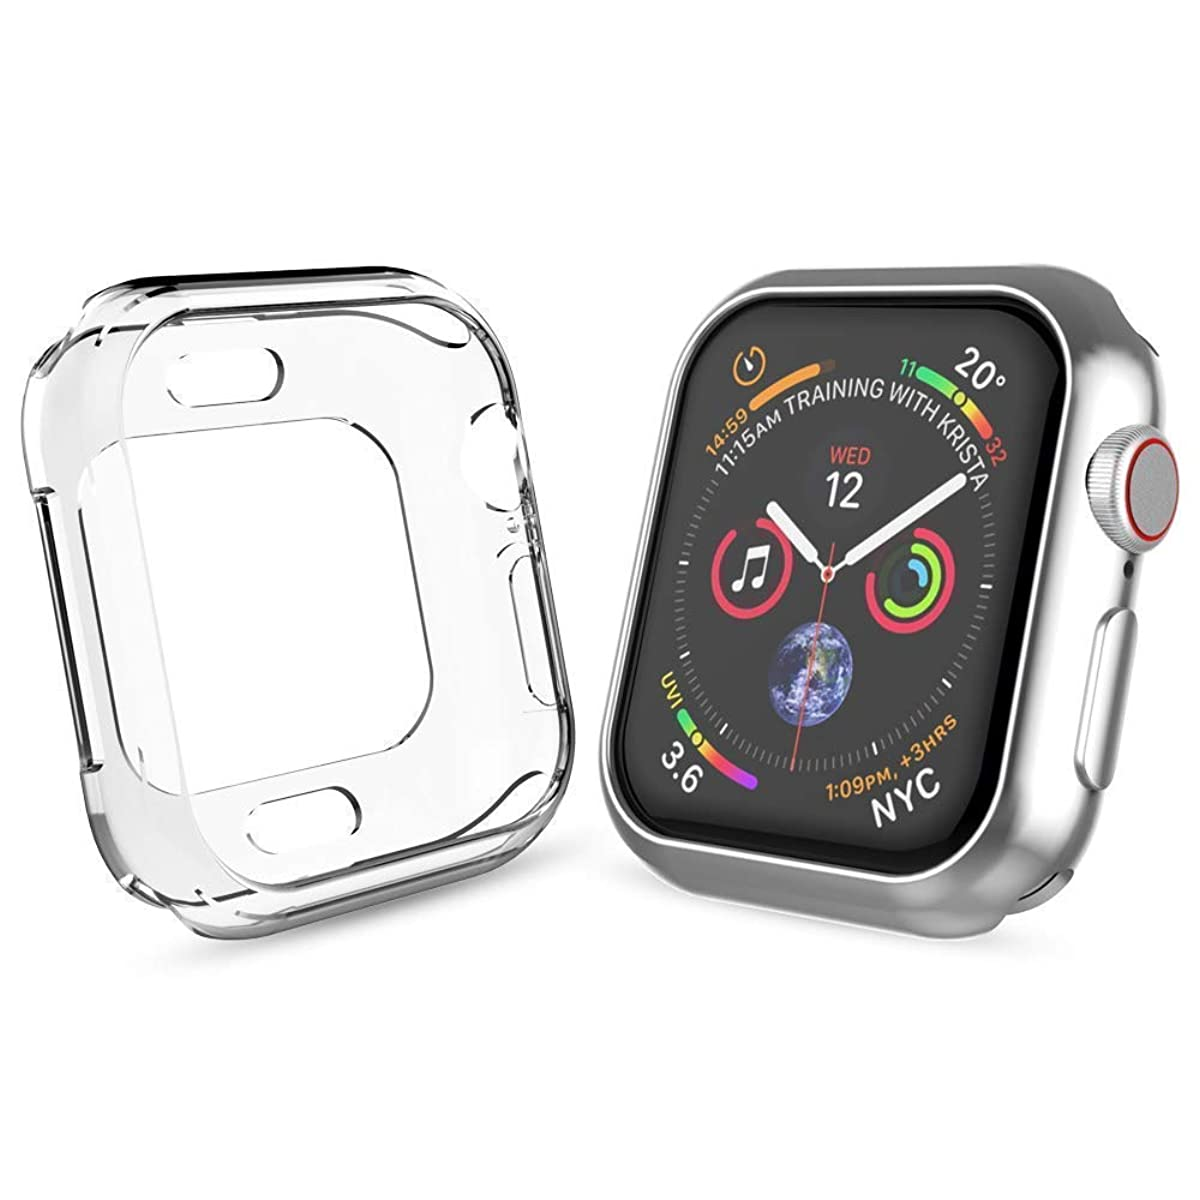 Tech Express [2 Pack] Metallic Chrome Case + Clear Bumper Case for Apple Watch Series 4 [iWatch Cover] Rugged Scratch Resistant Shockproof Metal Tough Open Front Lot of 2 (Silver + Clear, 40mm)